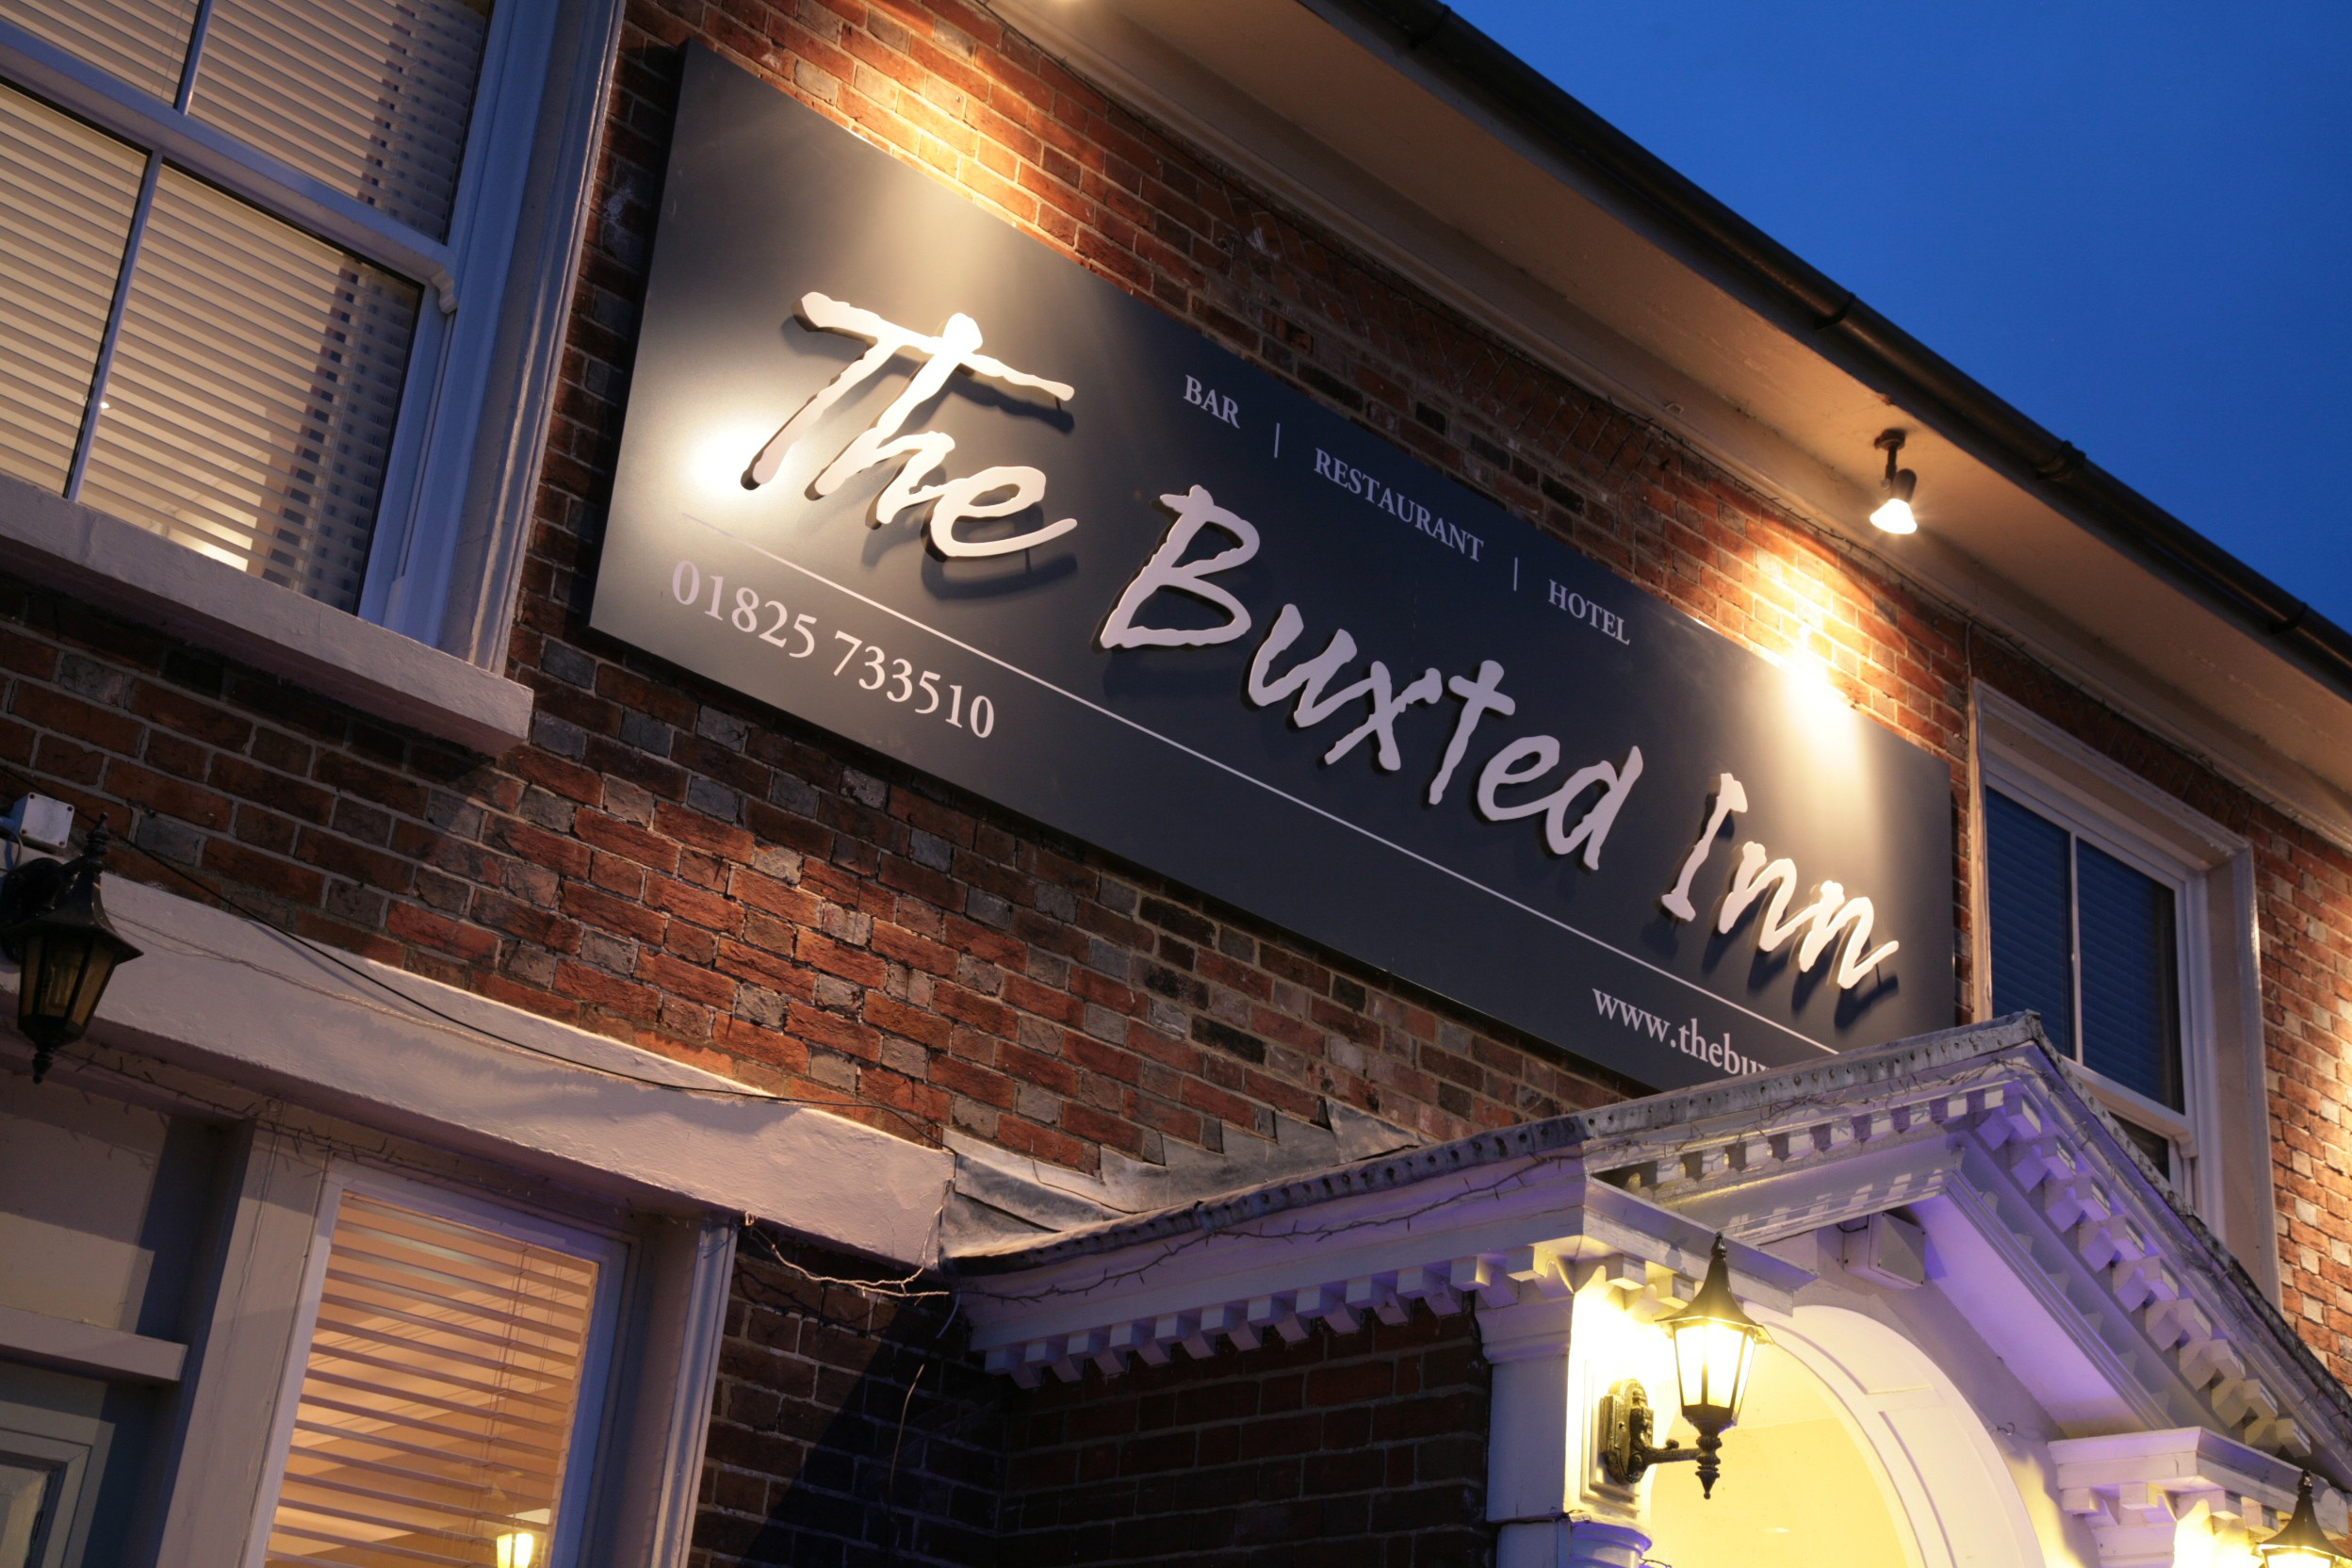 ‪The Buxted Inn Hotel‬